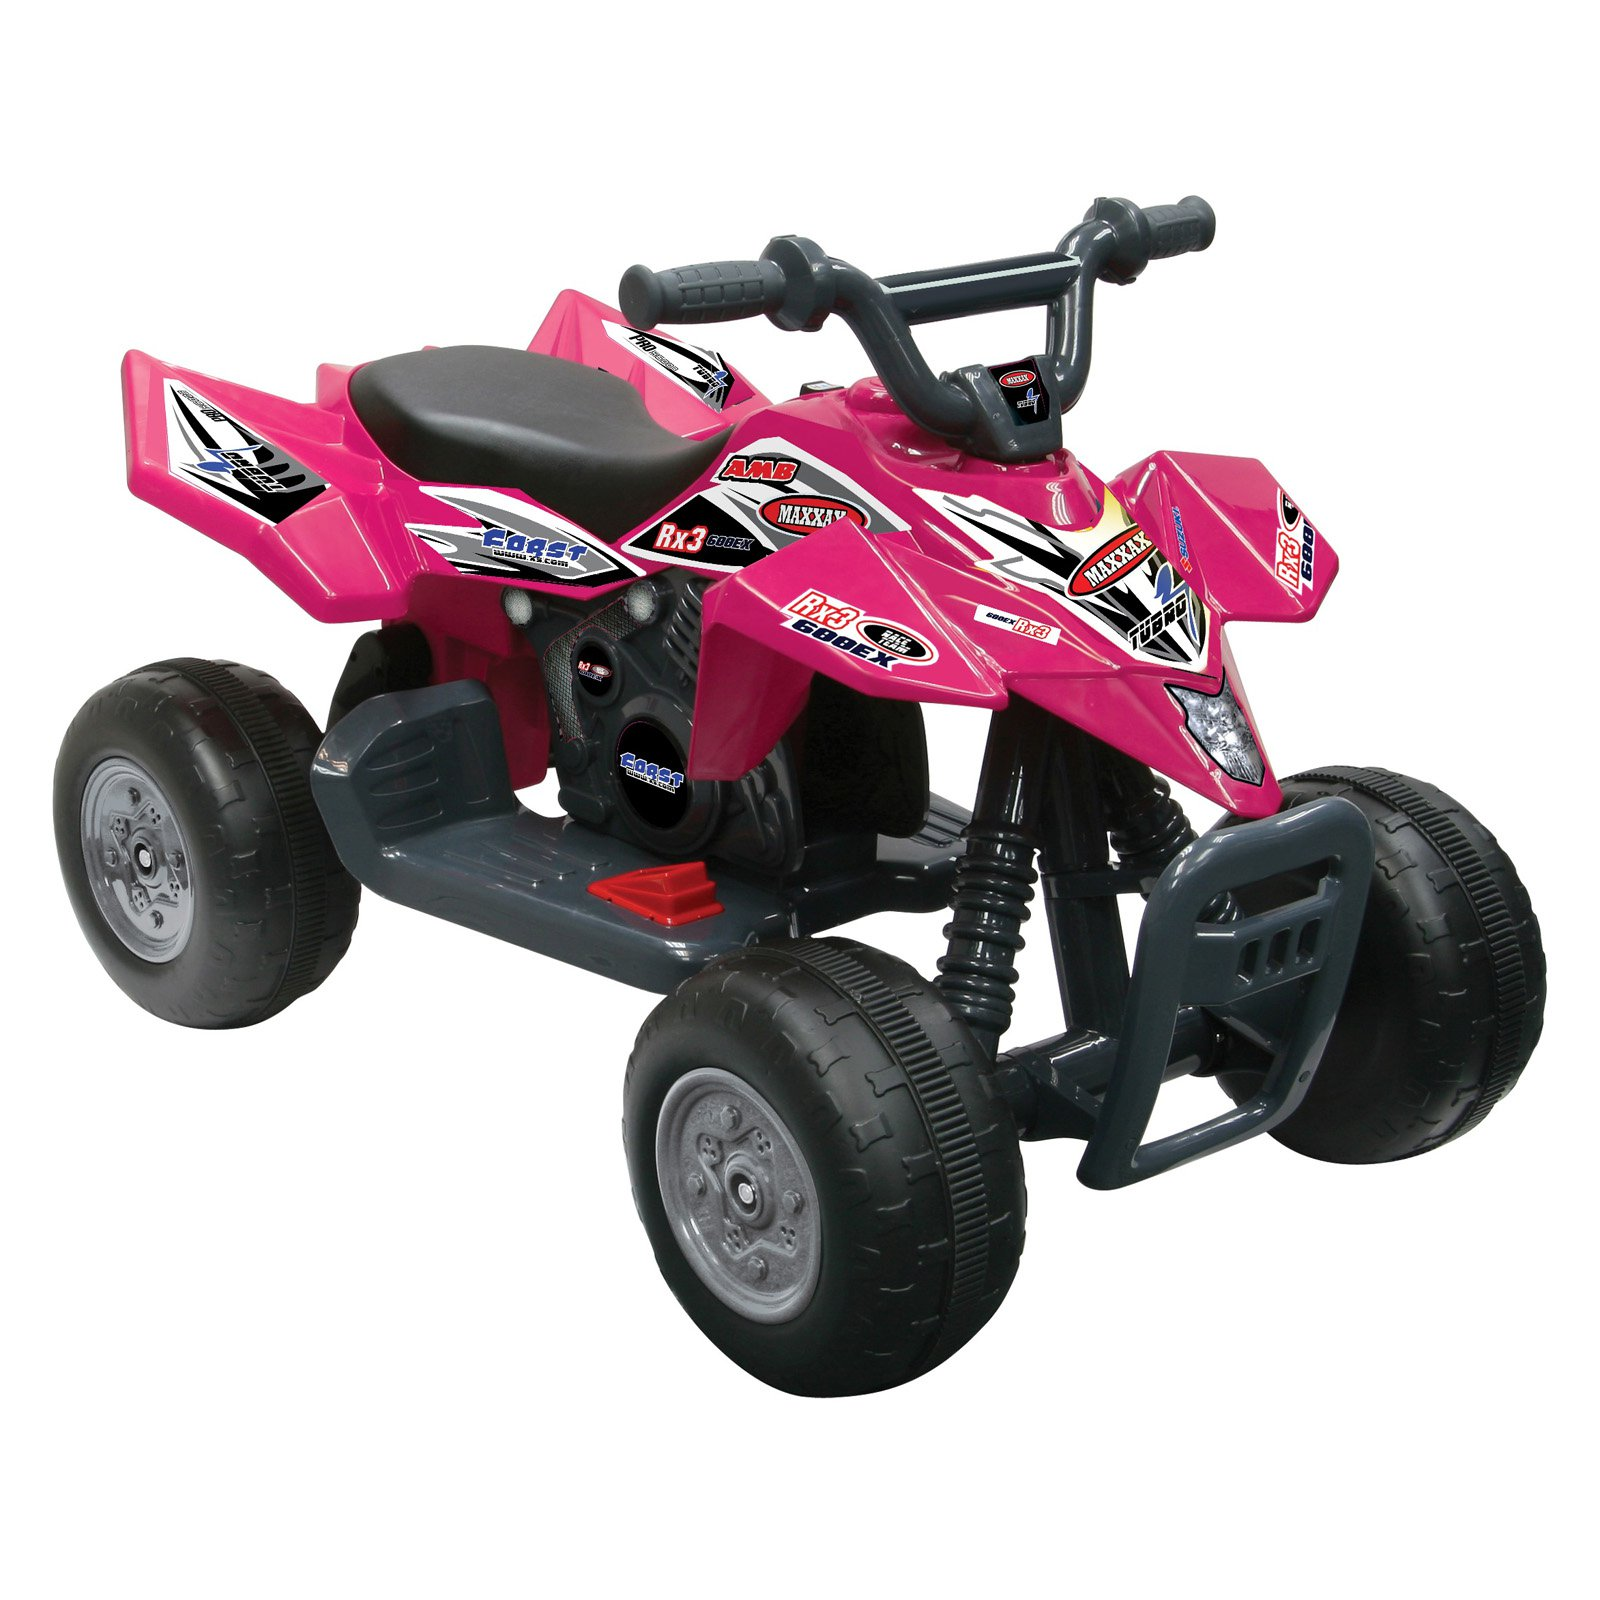 Kid Motorz Quad Racer ATV Battery Powered Riding Toy - Red